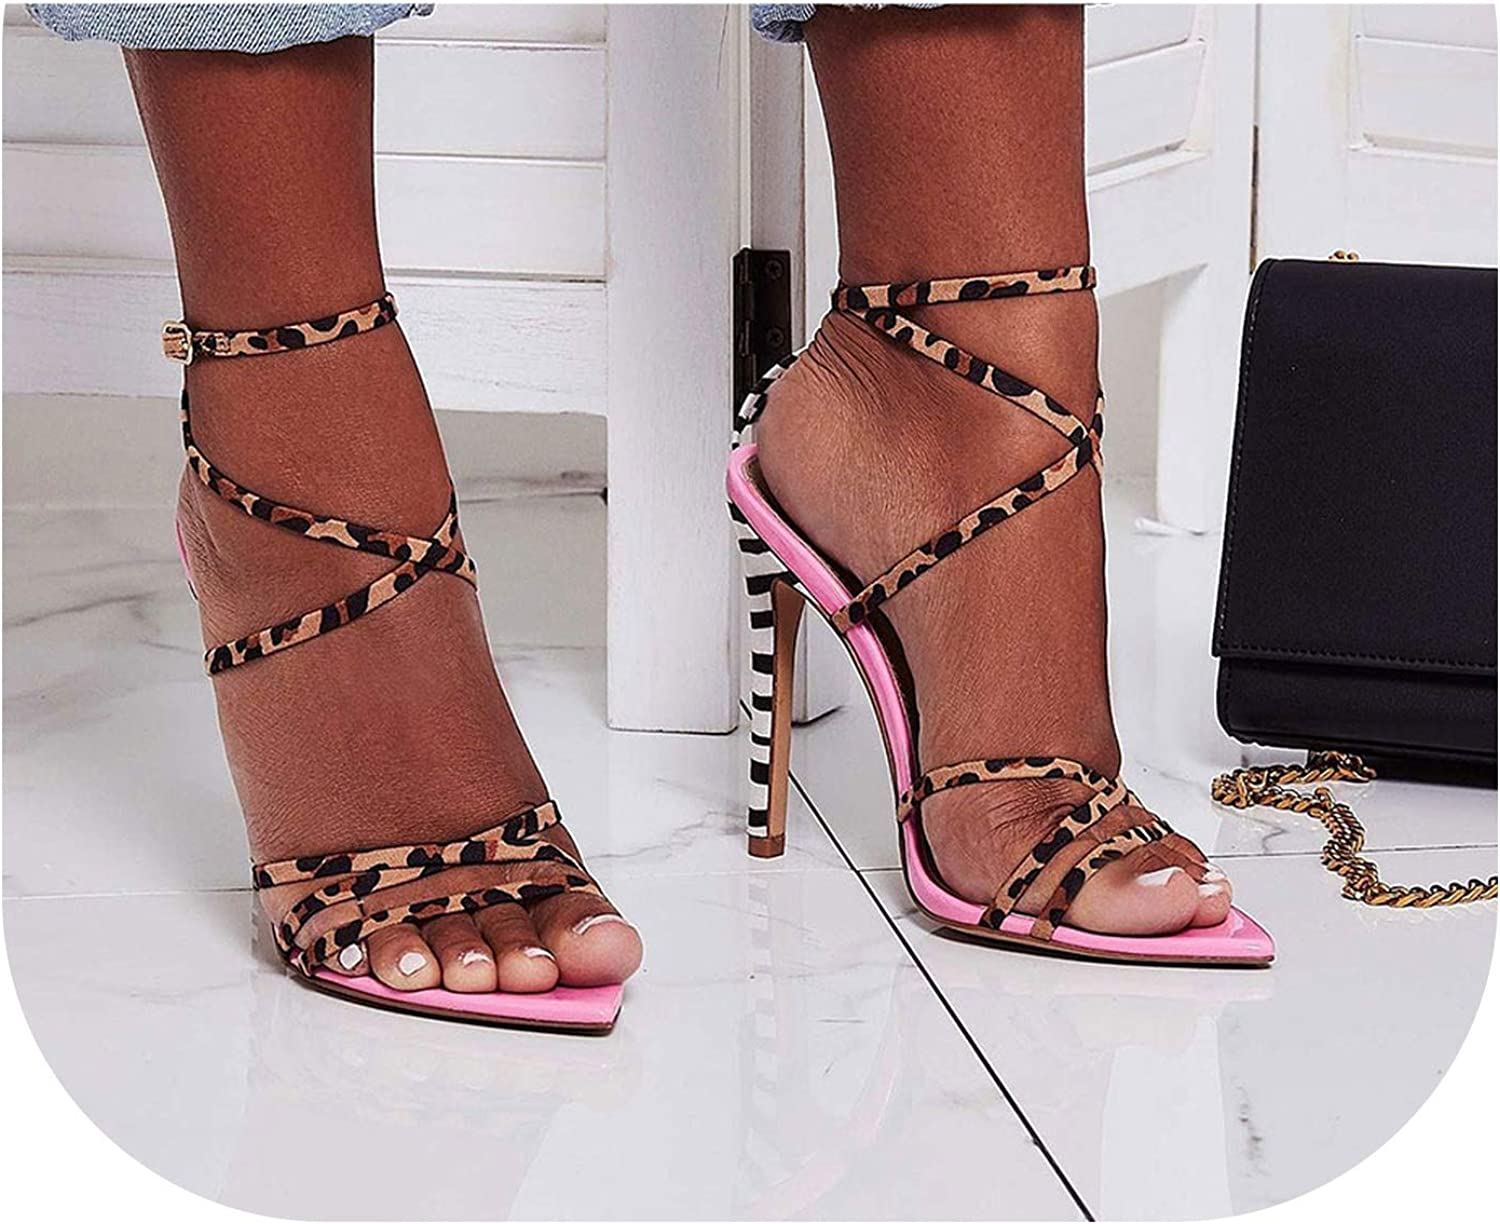 Alerghrg Striped High Stiletto Heels Sandals Mixed colors Leopard shoes Woman Pointy Open Toe